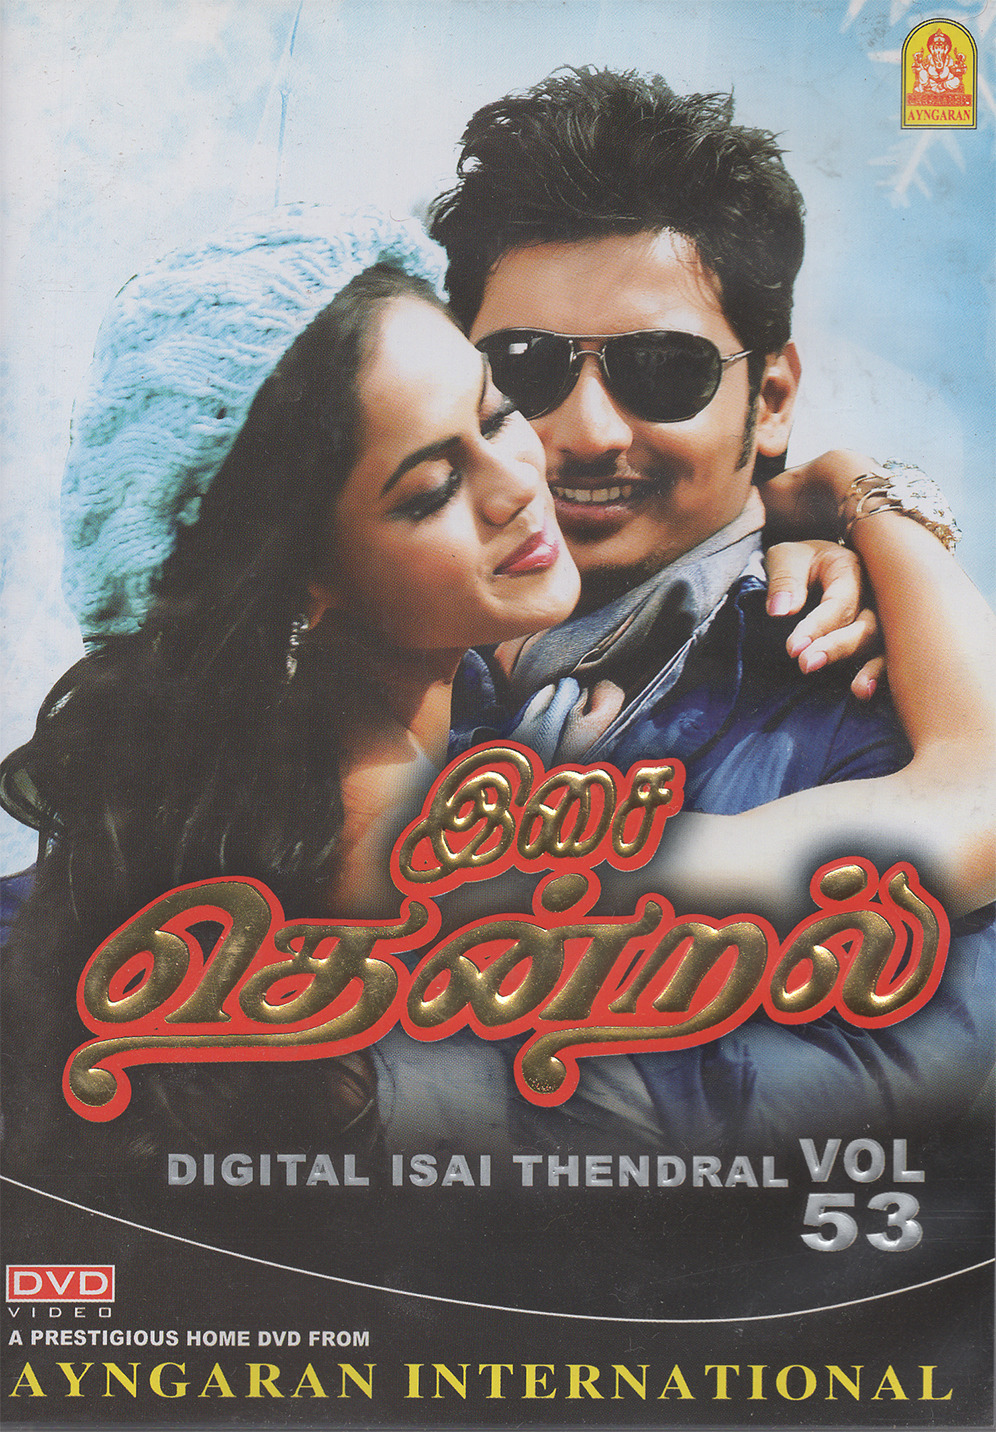 Digital Isai Thendral Vol 53